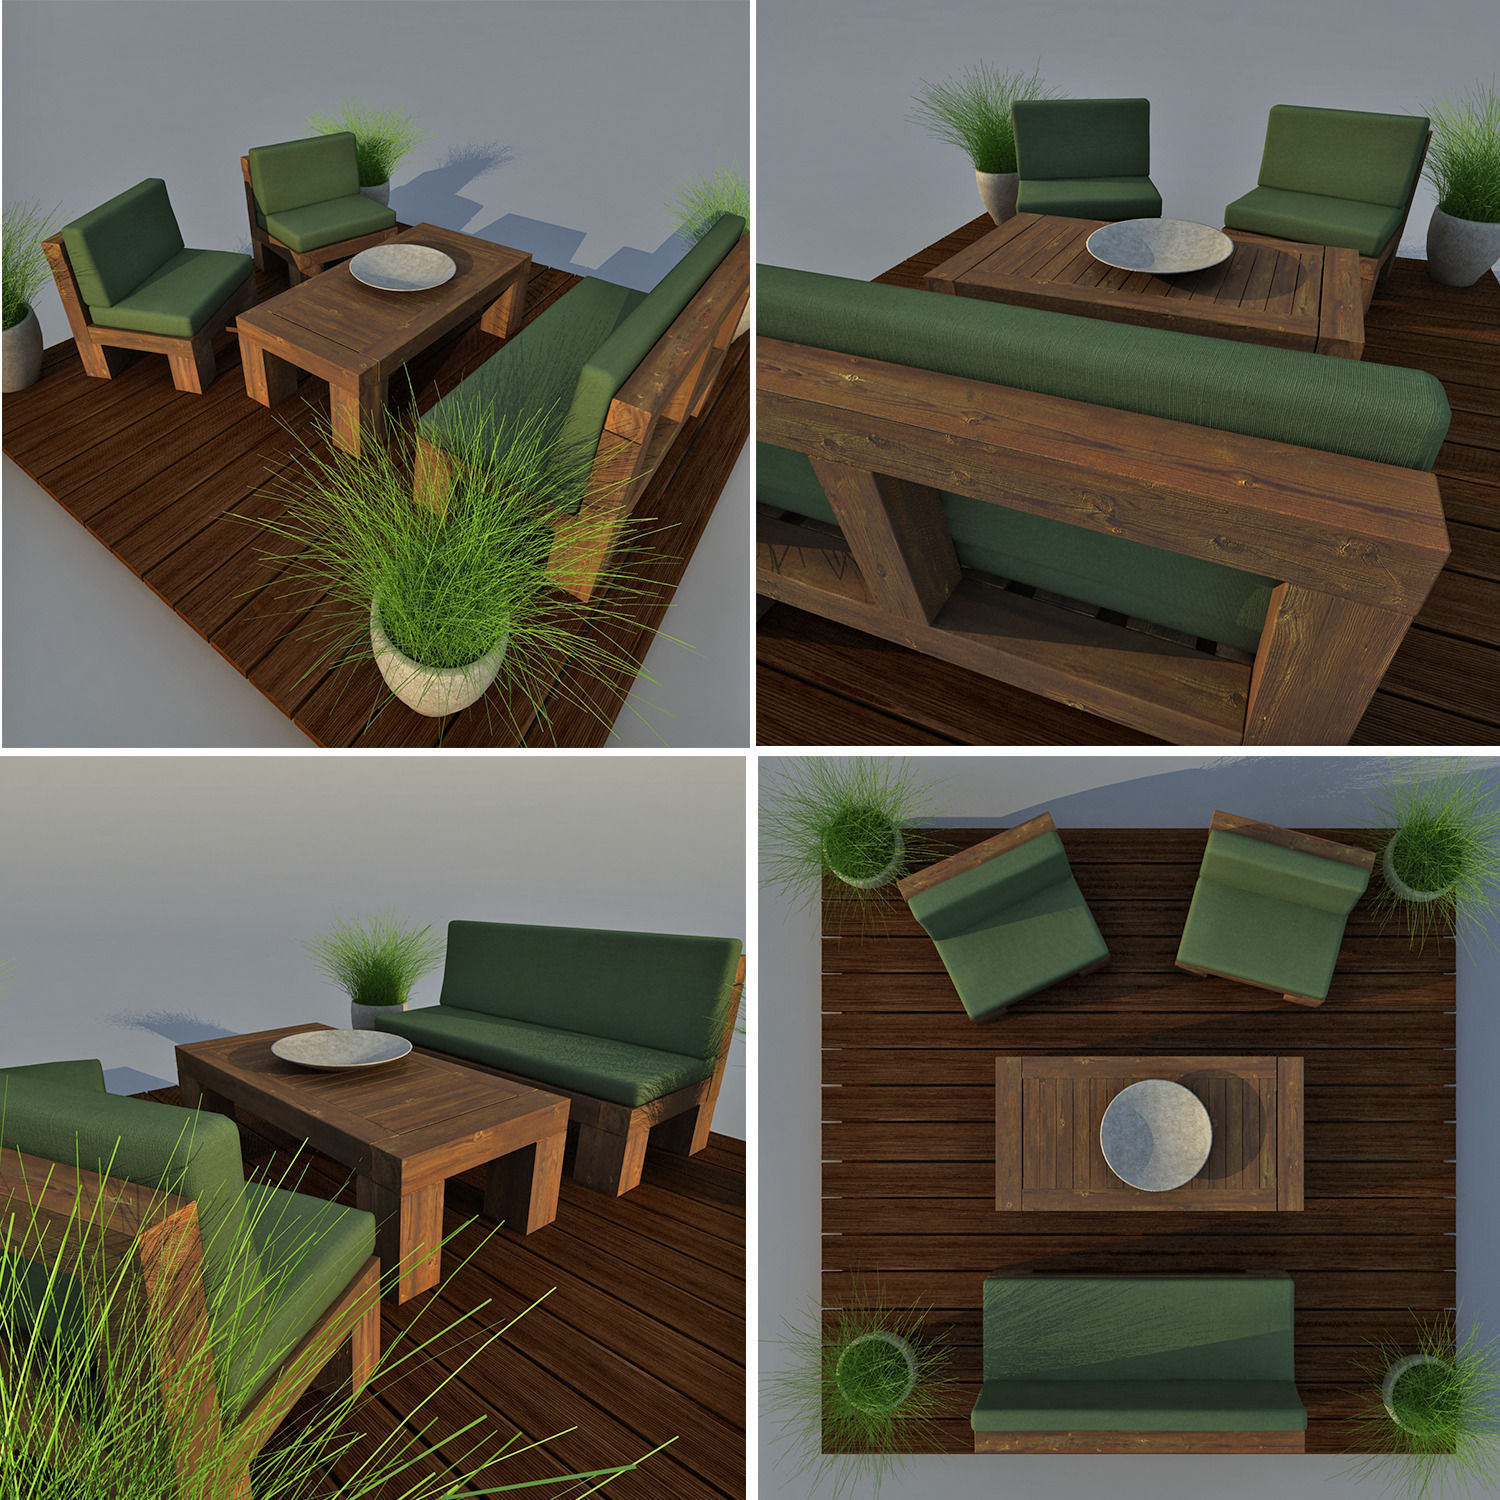 Lounge chair outdoor wood patio deck 3d model obj mtl cgtrader com -  Patio Furniture 3d Model Max Obj 3ds Fbx Mtl 2